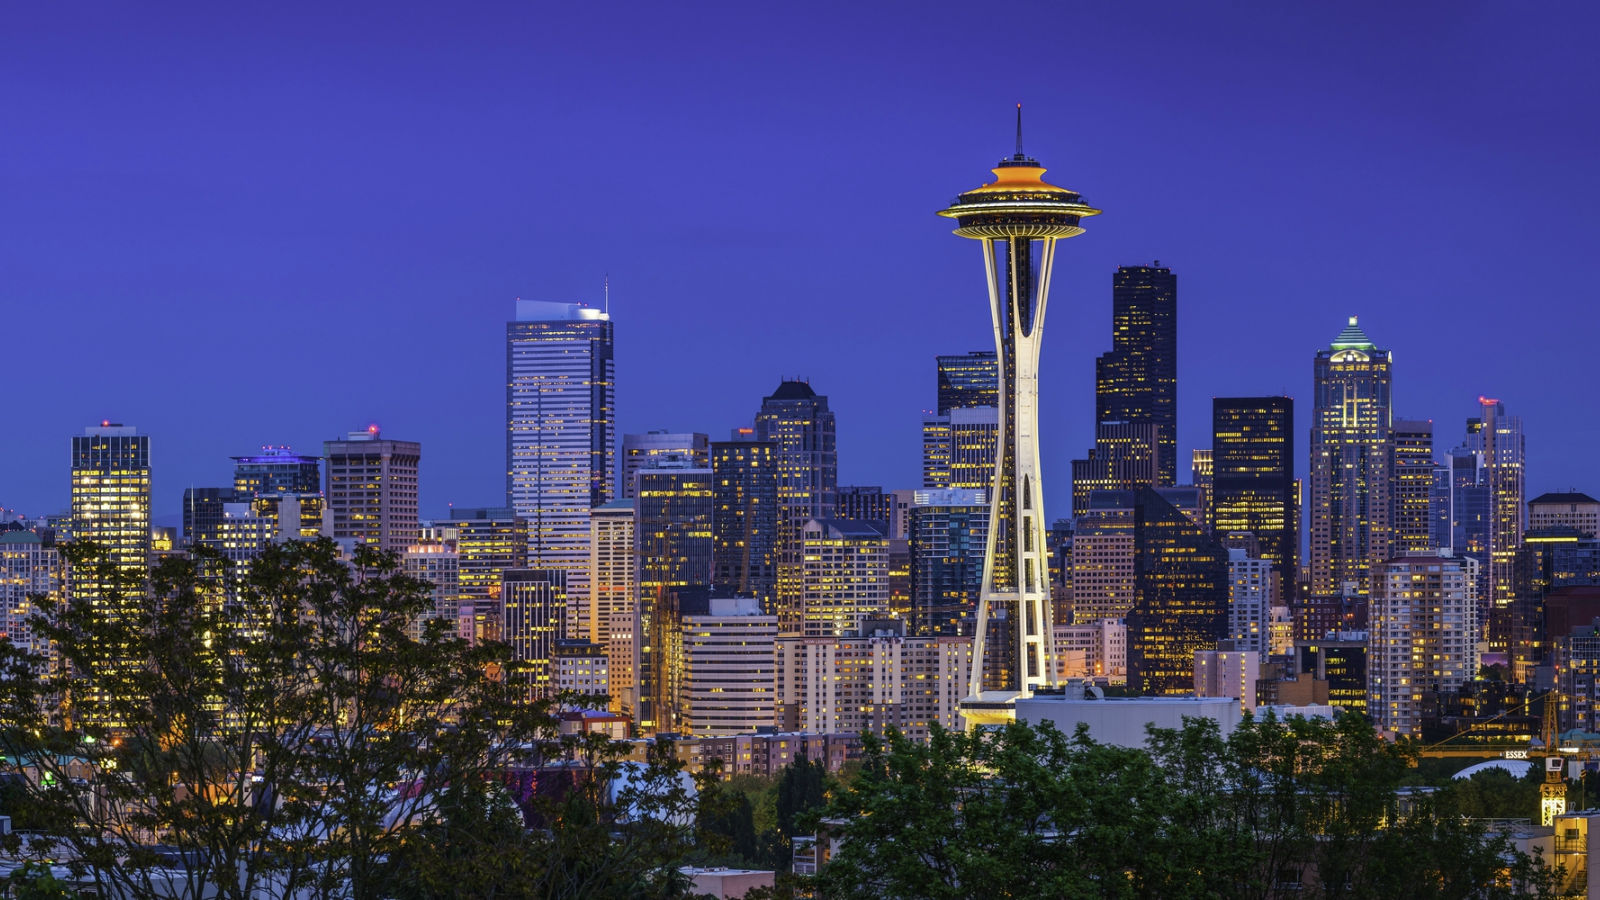 Seattle Attractions - Space Needle at Dusk